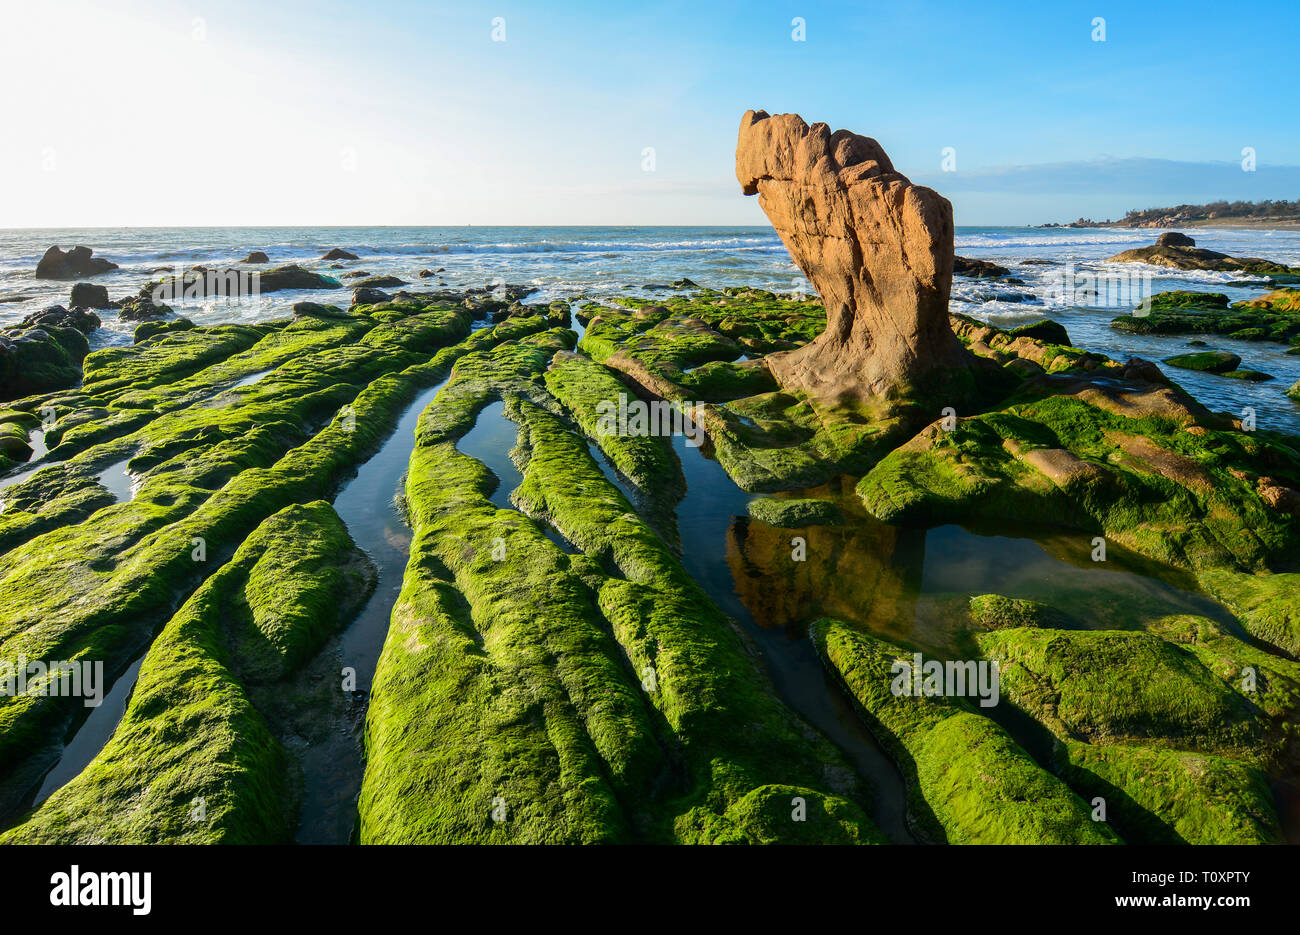 Green algae on a rock in the middle of the sea. South China Sea in Vietnam. - Stock Image